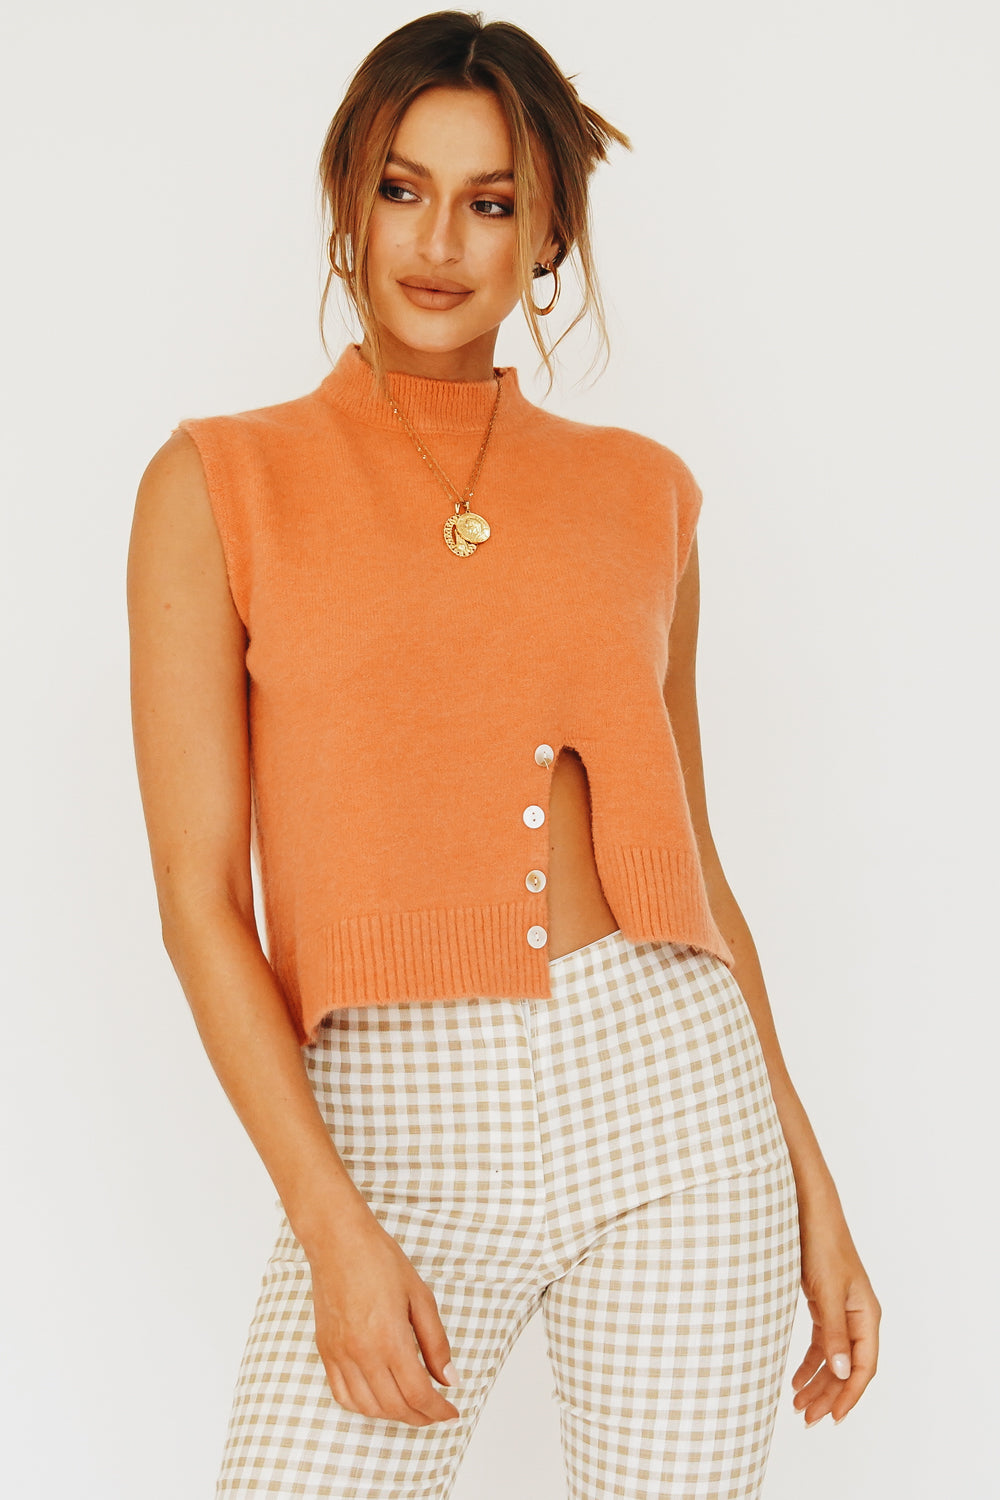 Taking The Lead Knit Top // Orange